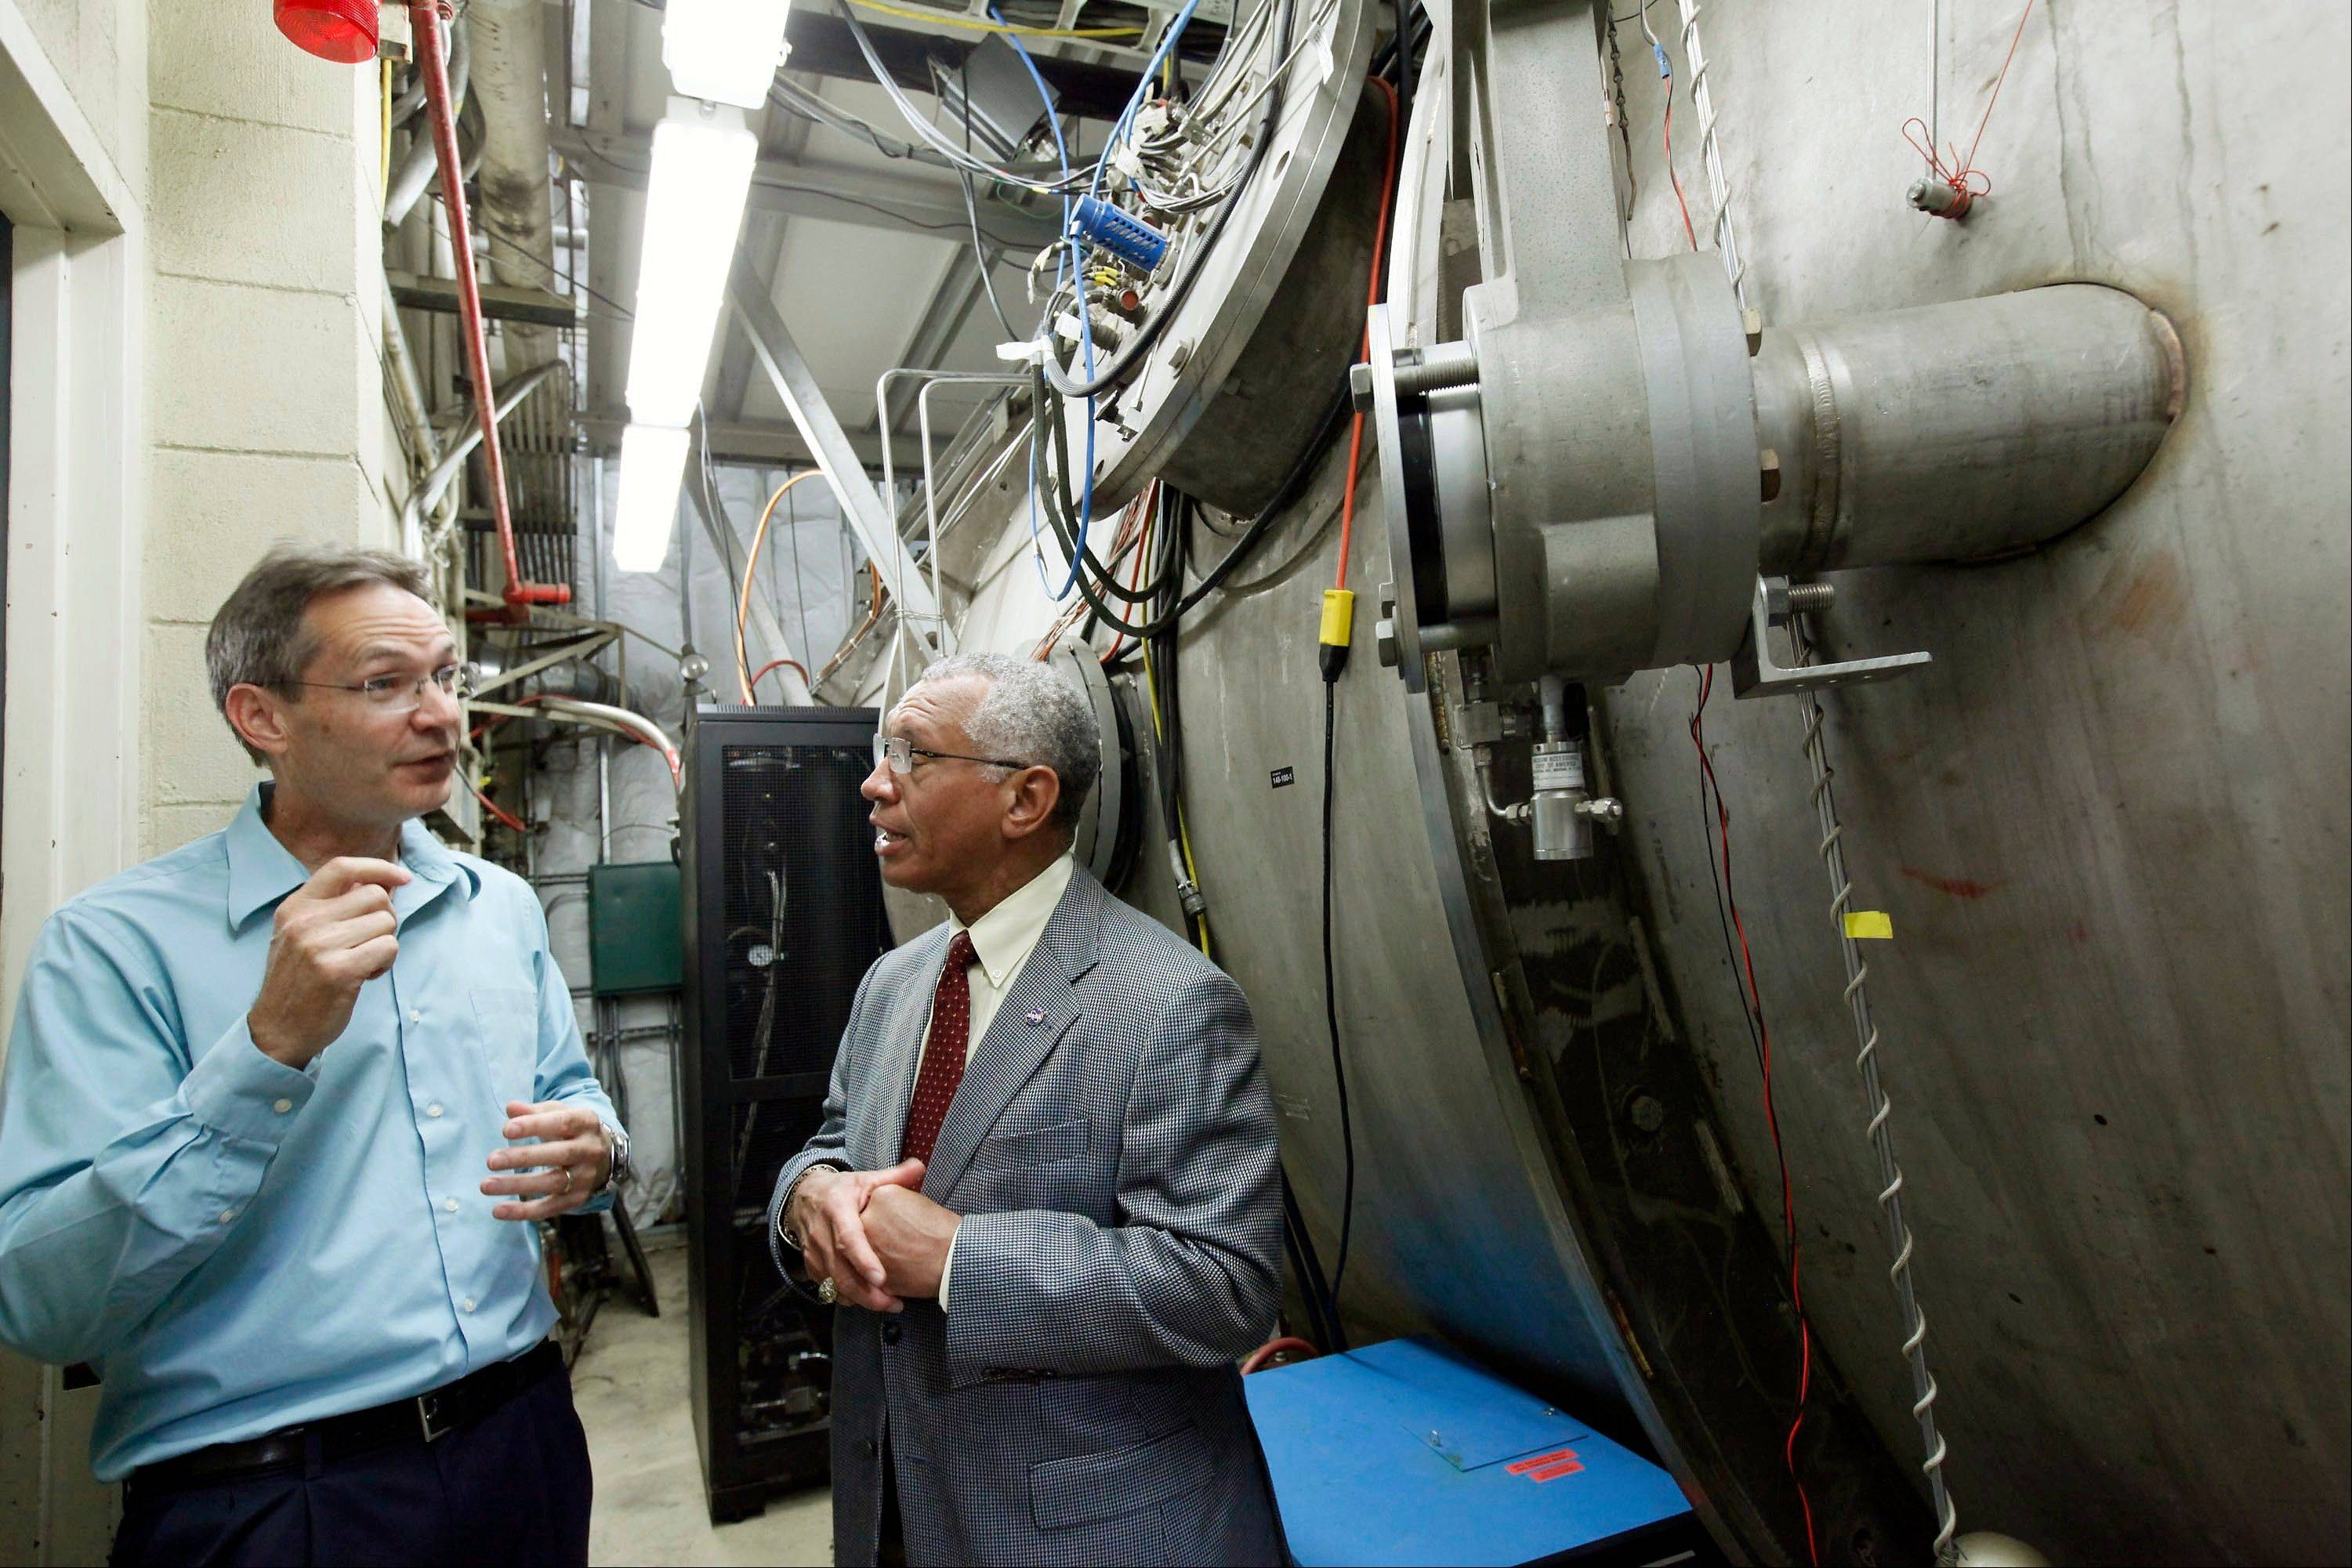 NASA Administrator Charles Bolden, right, talks with electric propulsion engineer John Brophy during a Thursday visit to Nasa's Jet Propulsion Laboratory in Pasadena, Calif.